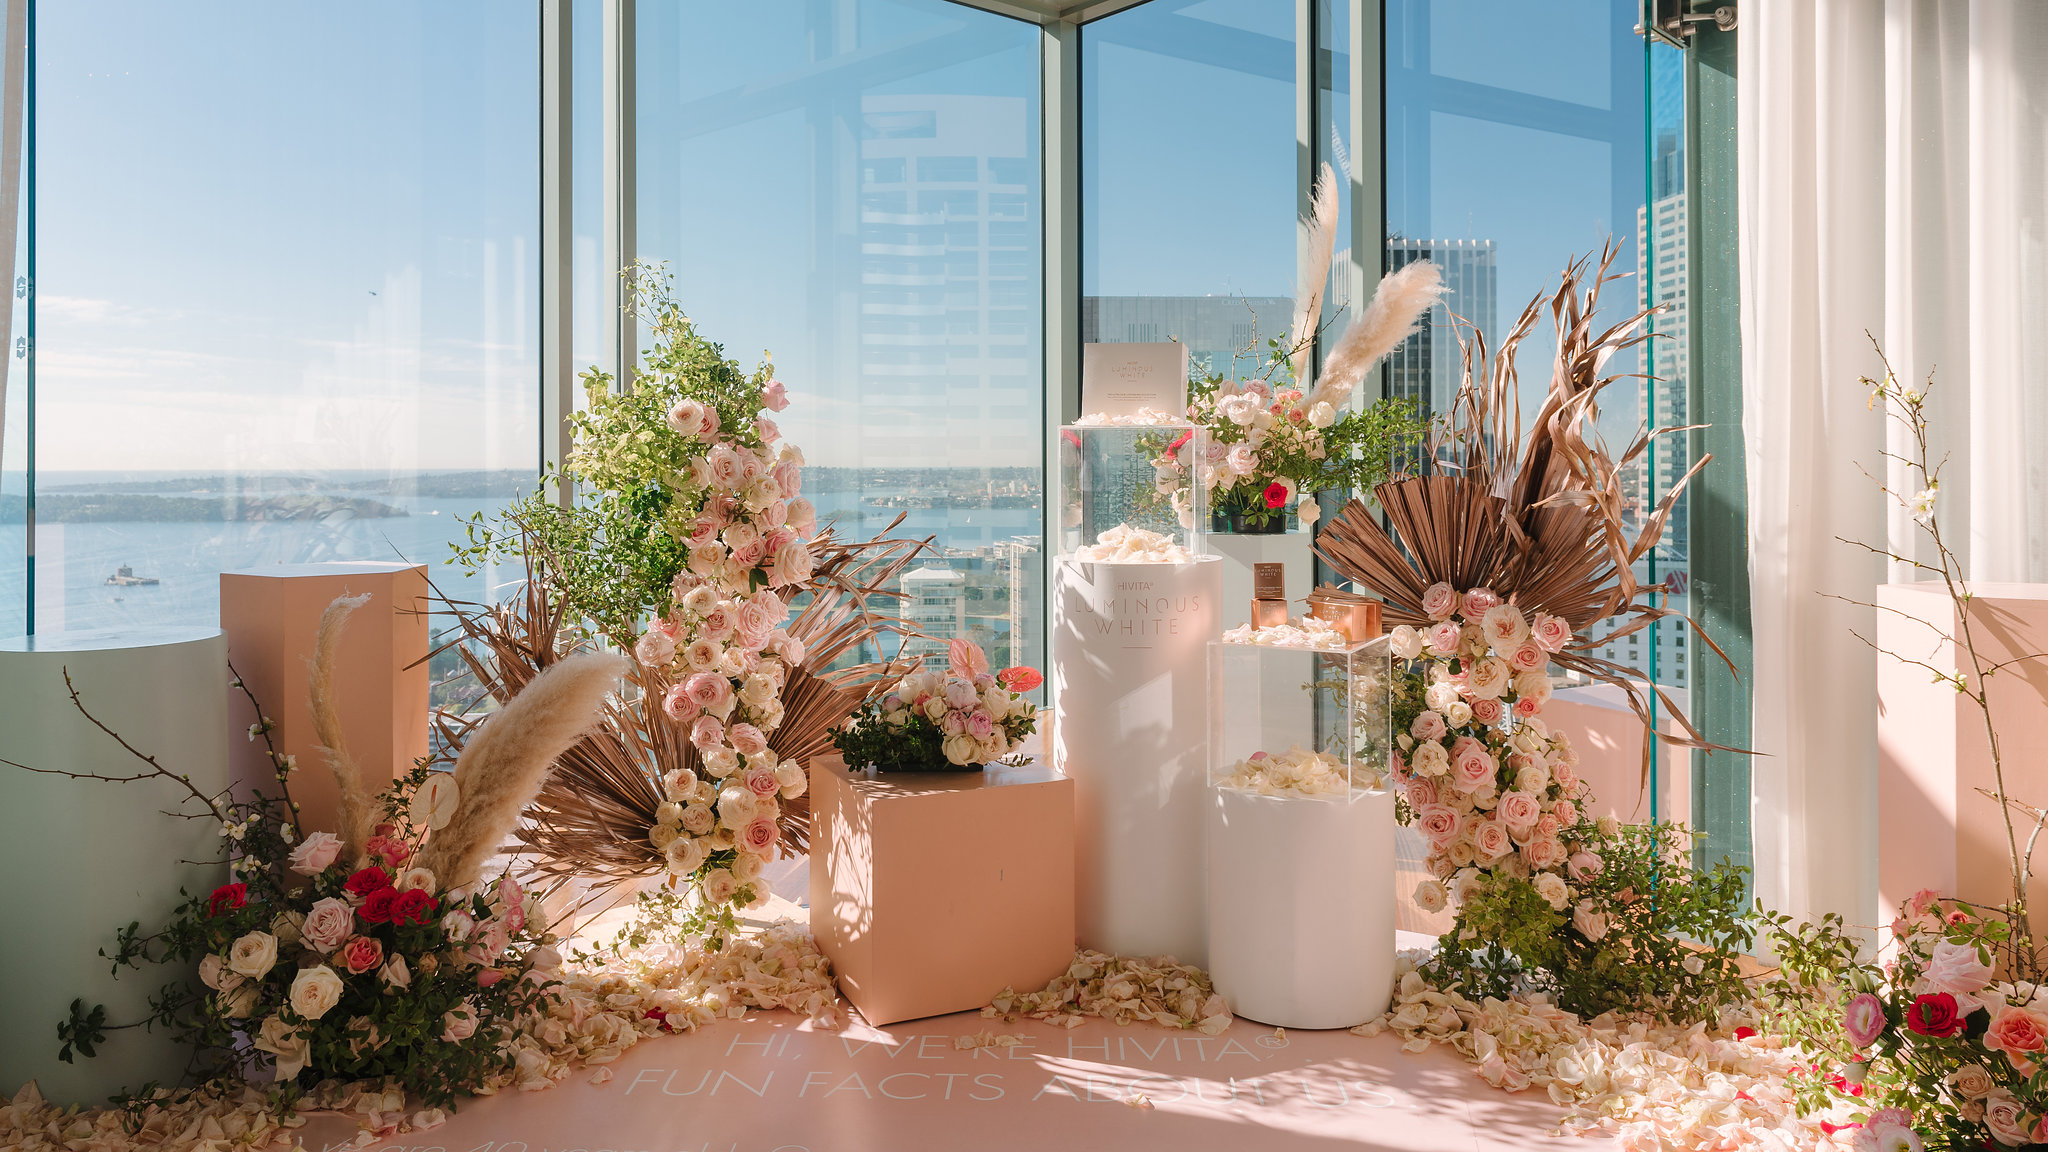 8. Shangri-La Hotel - Hotel weddings aren't typically the first choice for the modern Australian couple looking for a contemporary and stylist wedding. This is because hotels for decades have offered stale ballrooms and not much else. Fortunately, hotels are coming around and Sydney's Shangri-La offers an amazing view for wedding ceremonies at its Altitude Restaurant & Bar. The standard dining chairs in the ballroom are still admittedly dated but nothing that a professional stylist cannot work around.Location: 176 Cumberland St, The RocksStyle: Modern, luxuriousWhy we recommend Shangri-La for weddings:- Full-service, professional, and experienced hospitality.Our styling recommendations:- Bring in your own furniture as the tables and chairs are dated.- For a wedding ceremony at Altitude Restaurant & Bar, use acrylic plinths so as not to block theincredible panoramic views.